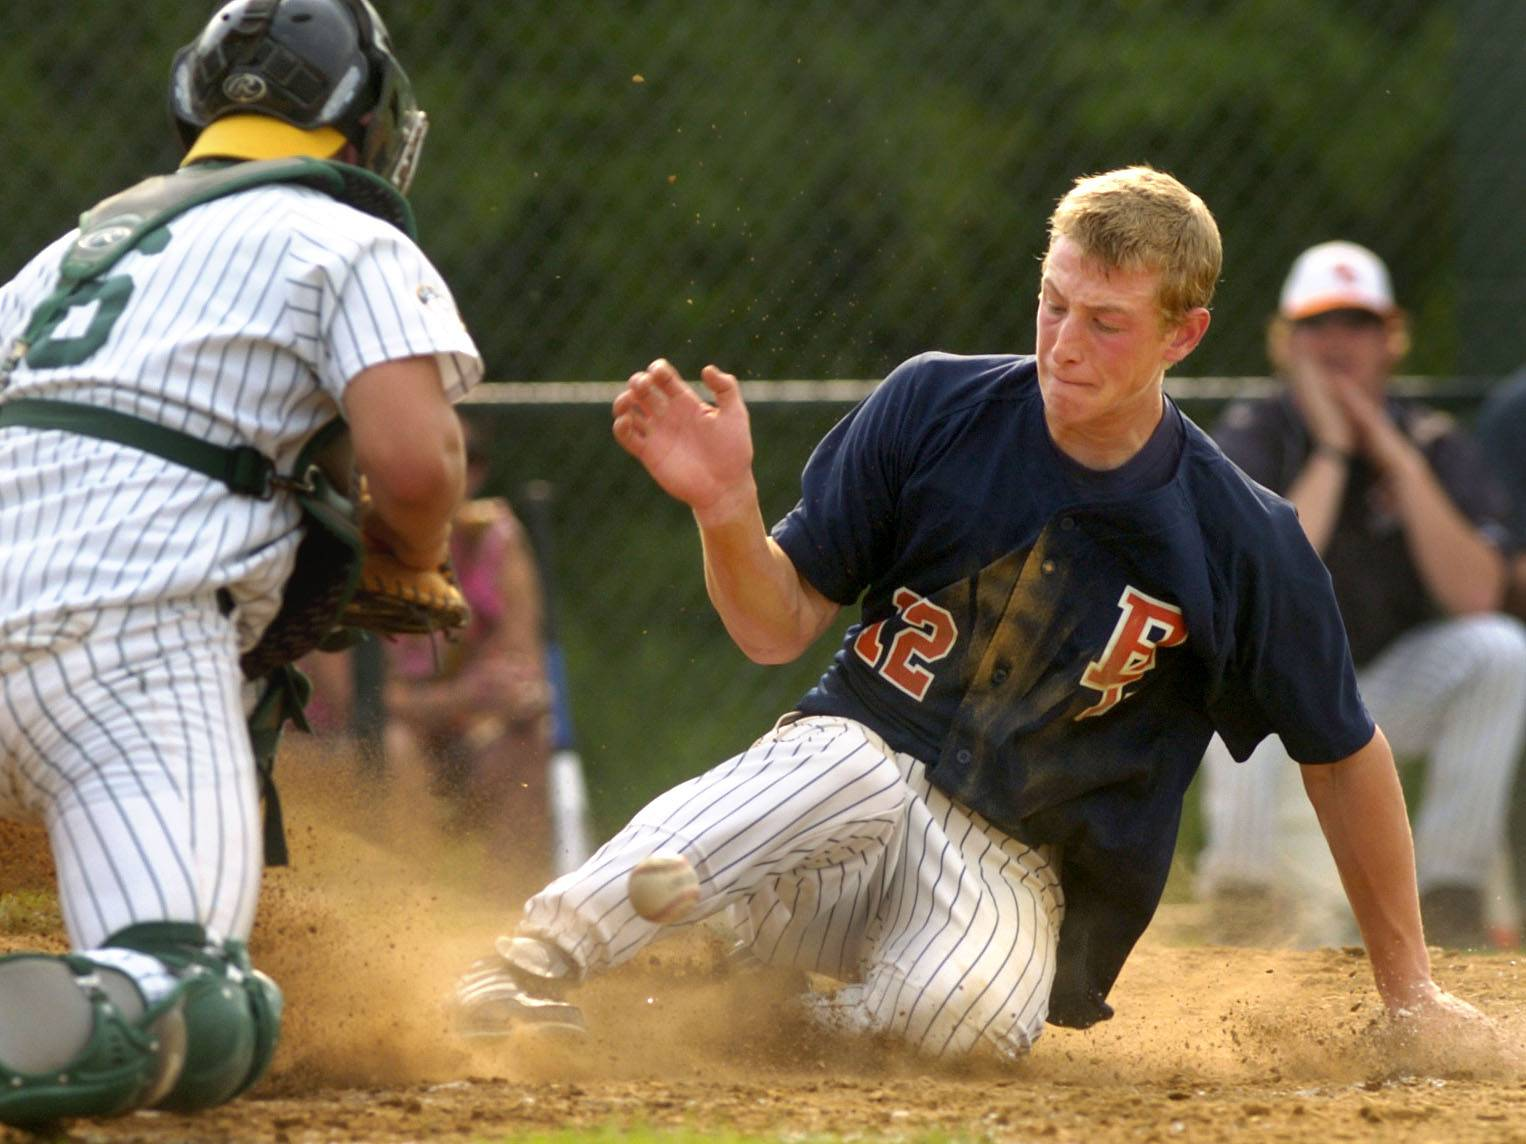 Zach Borenstein of Buffalo Grove, here scoring against Elk Grove during regional play in the 2007 season, is hoping a free agent opportunity with the Mets was a good business decision.